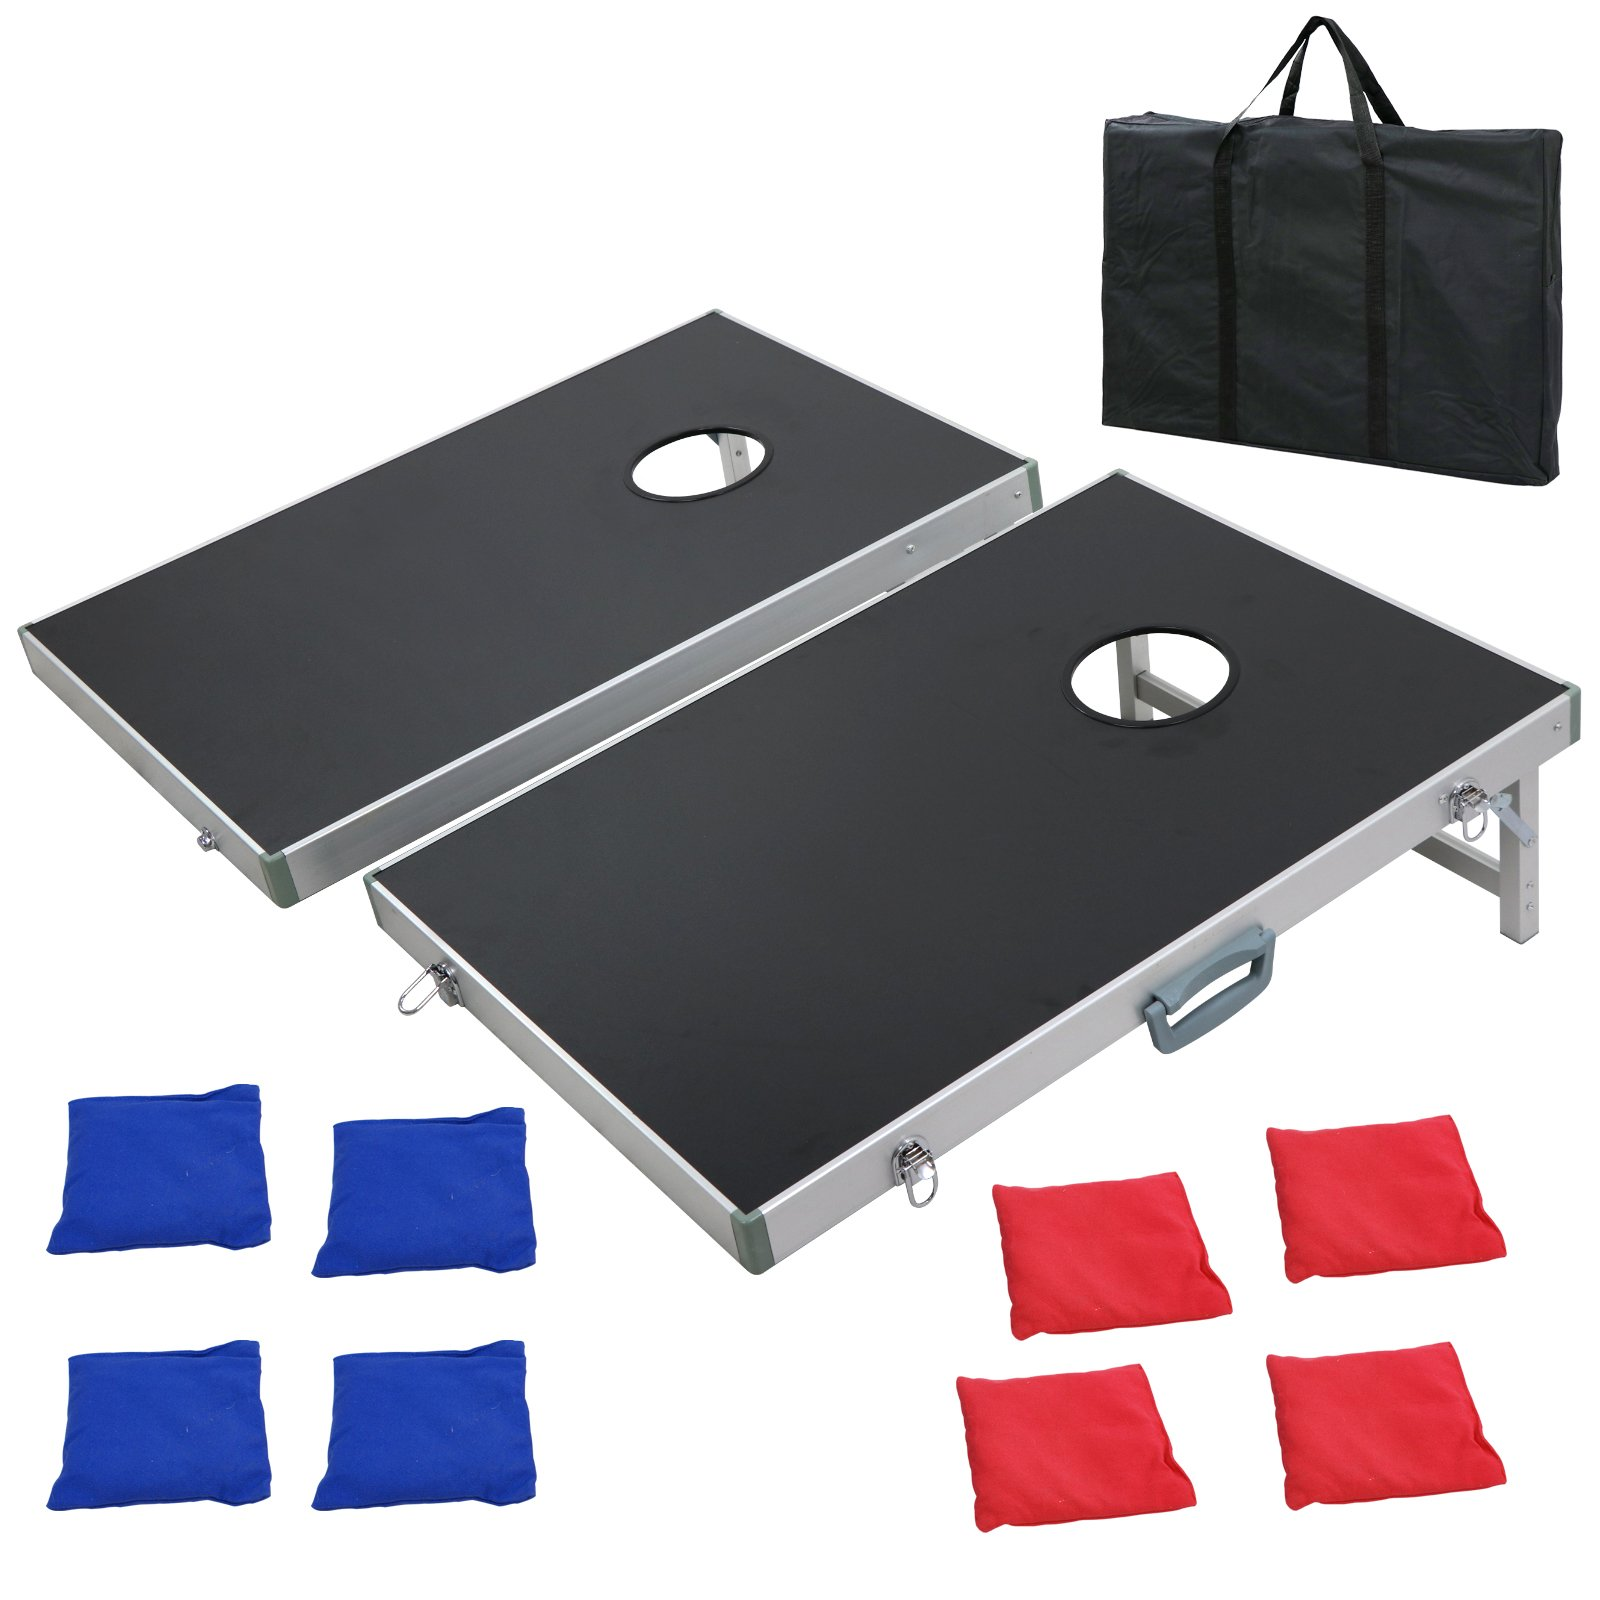 Nova Microdermabrasion 3ft X 2 ft Cornhole Bean Bag Toss Game Set Aluminum W/Carrying Case for Tailgate Party Backyard BBQ (3' x 2' Aluminum)